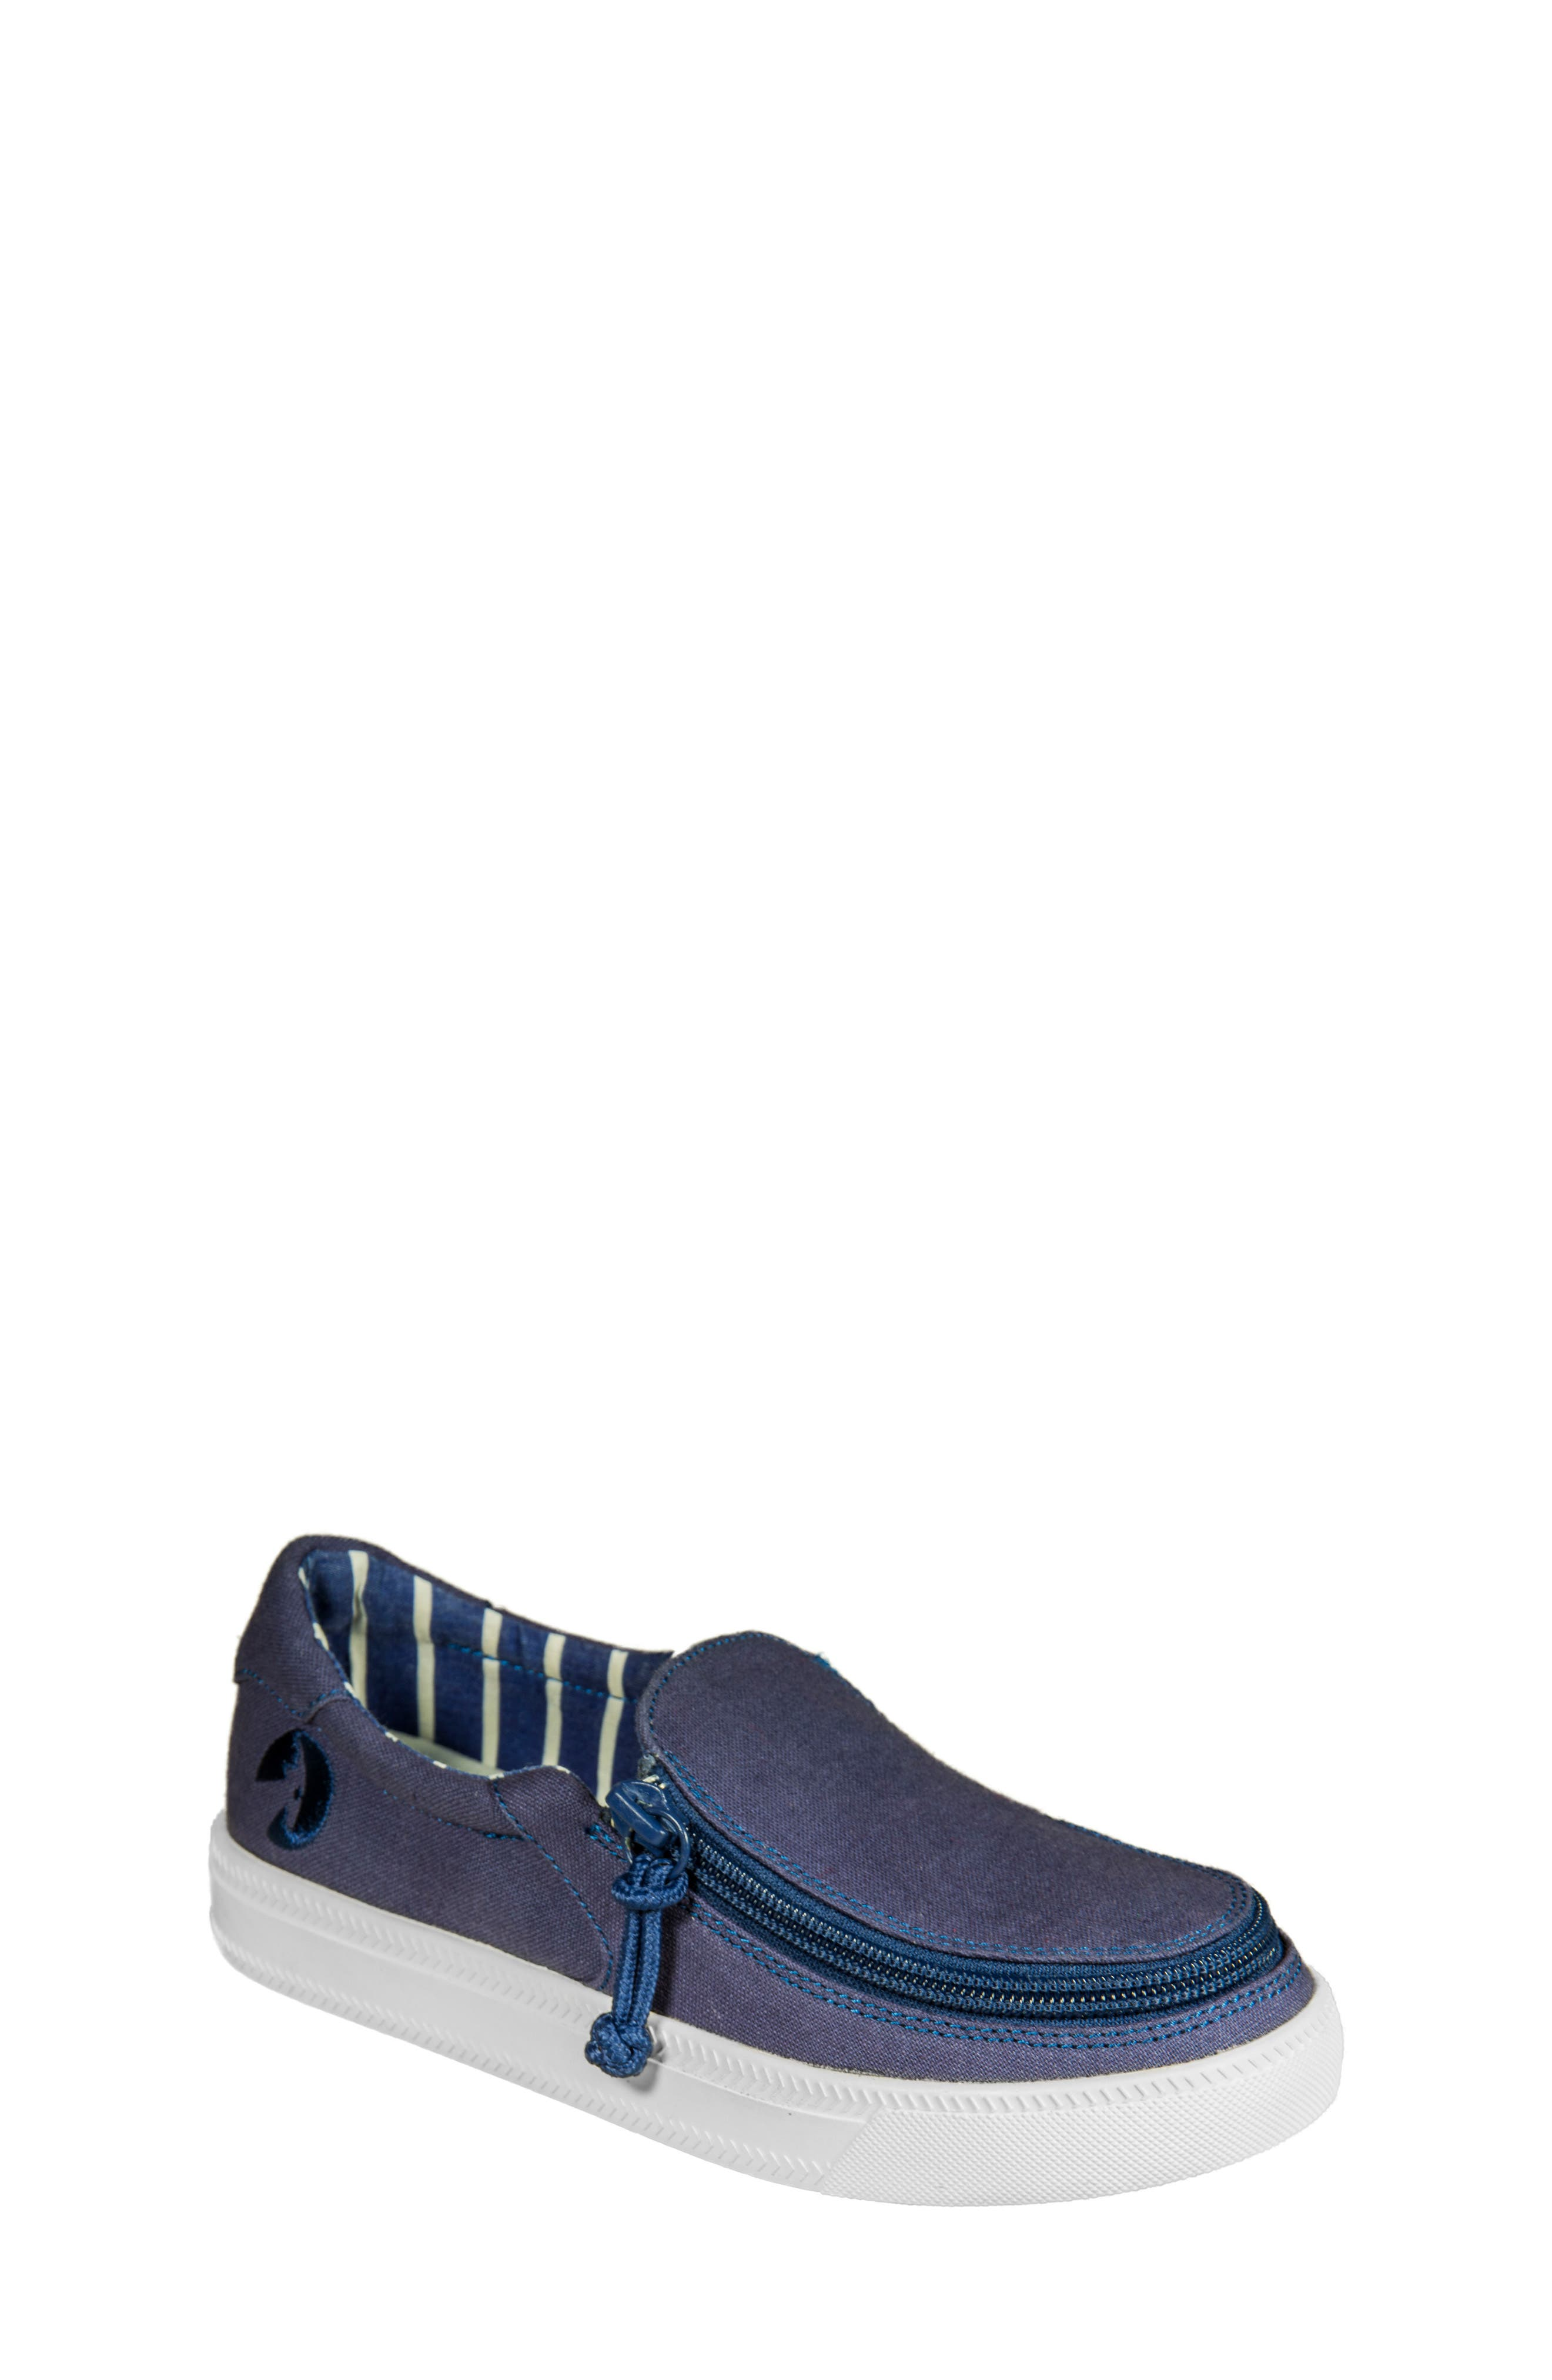 Zip Around Low Top Sneaker,                             Main thumbnail 1, color,                             Navy Canvas